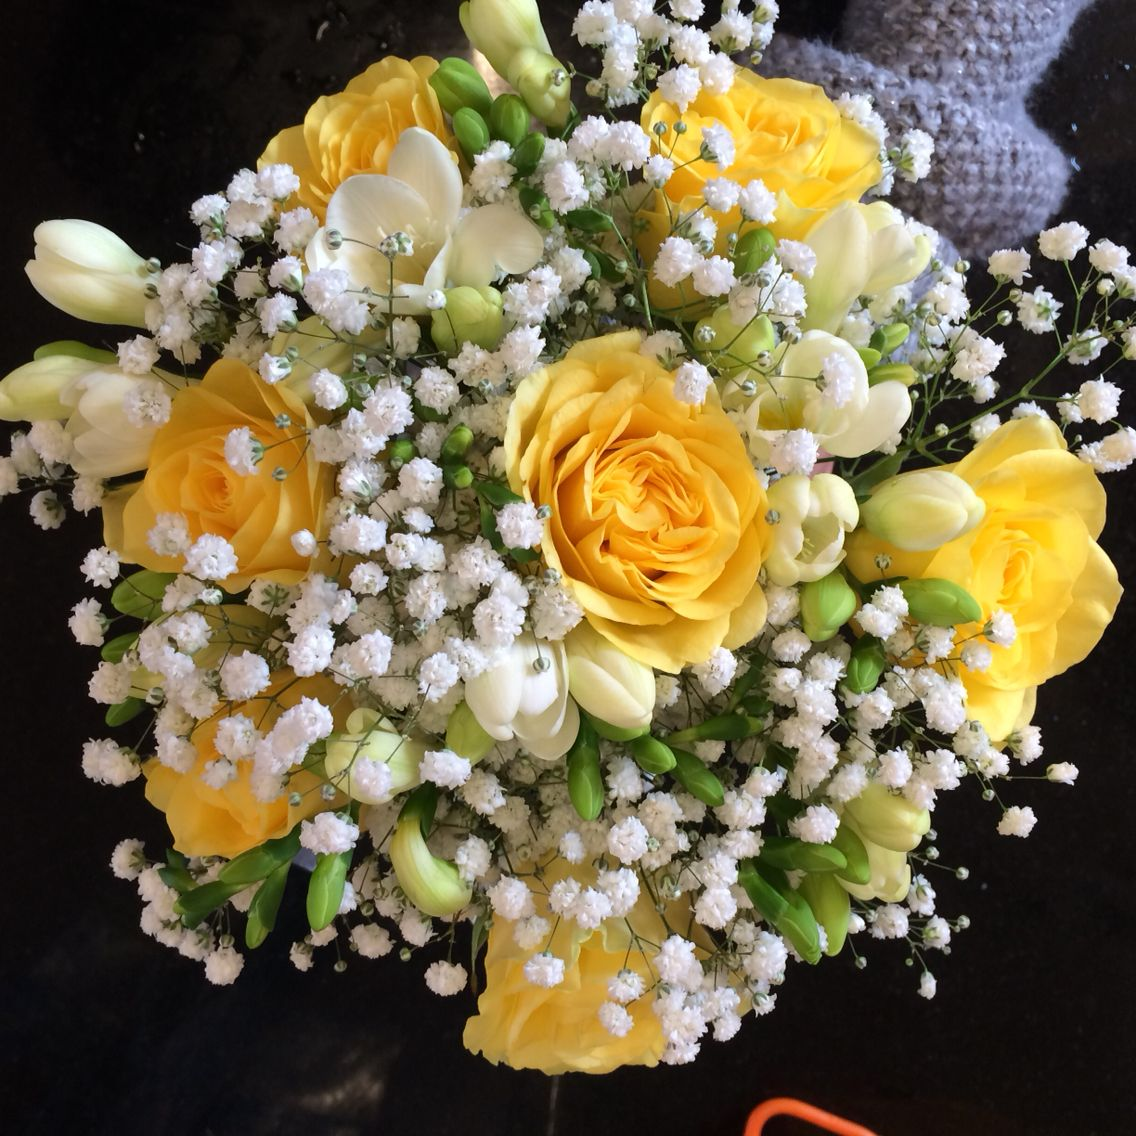 Yellow wedding flowers yellow roses with freesia and gyp hand tied yellow wedding flowers yellow roses with freesia and gyp hand tied wedding flowers gypsophila is back in fashion love this bridal bouquet it has a dreamy izmirmasajfo